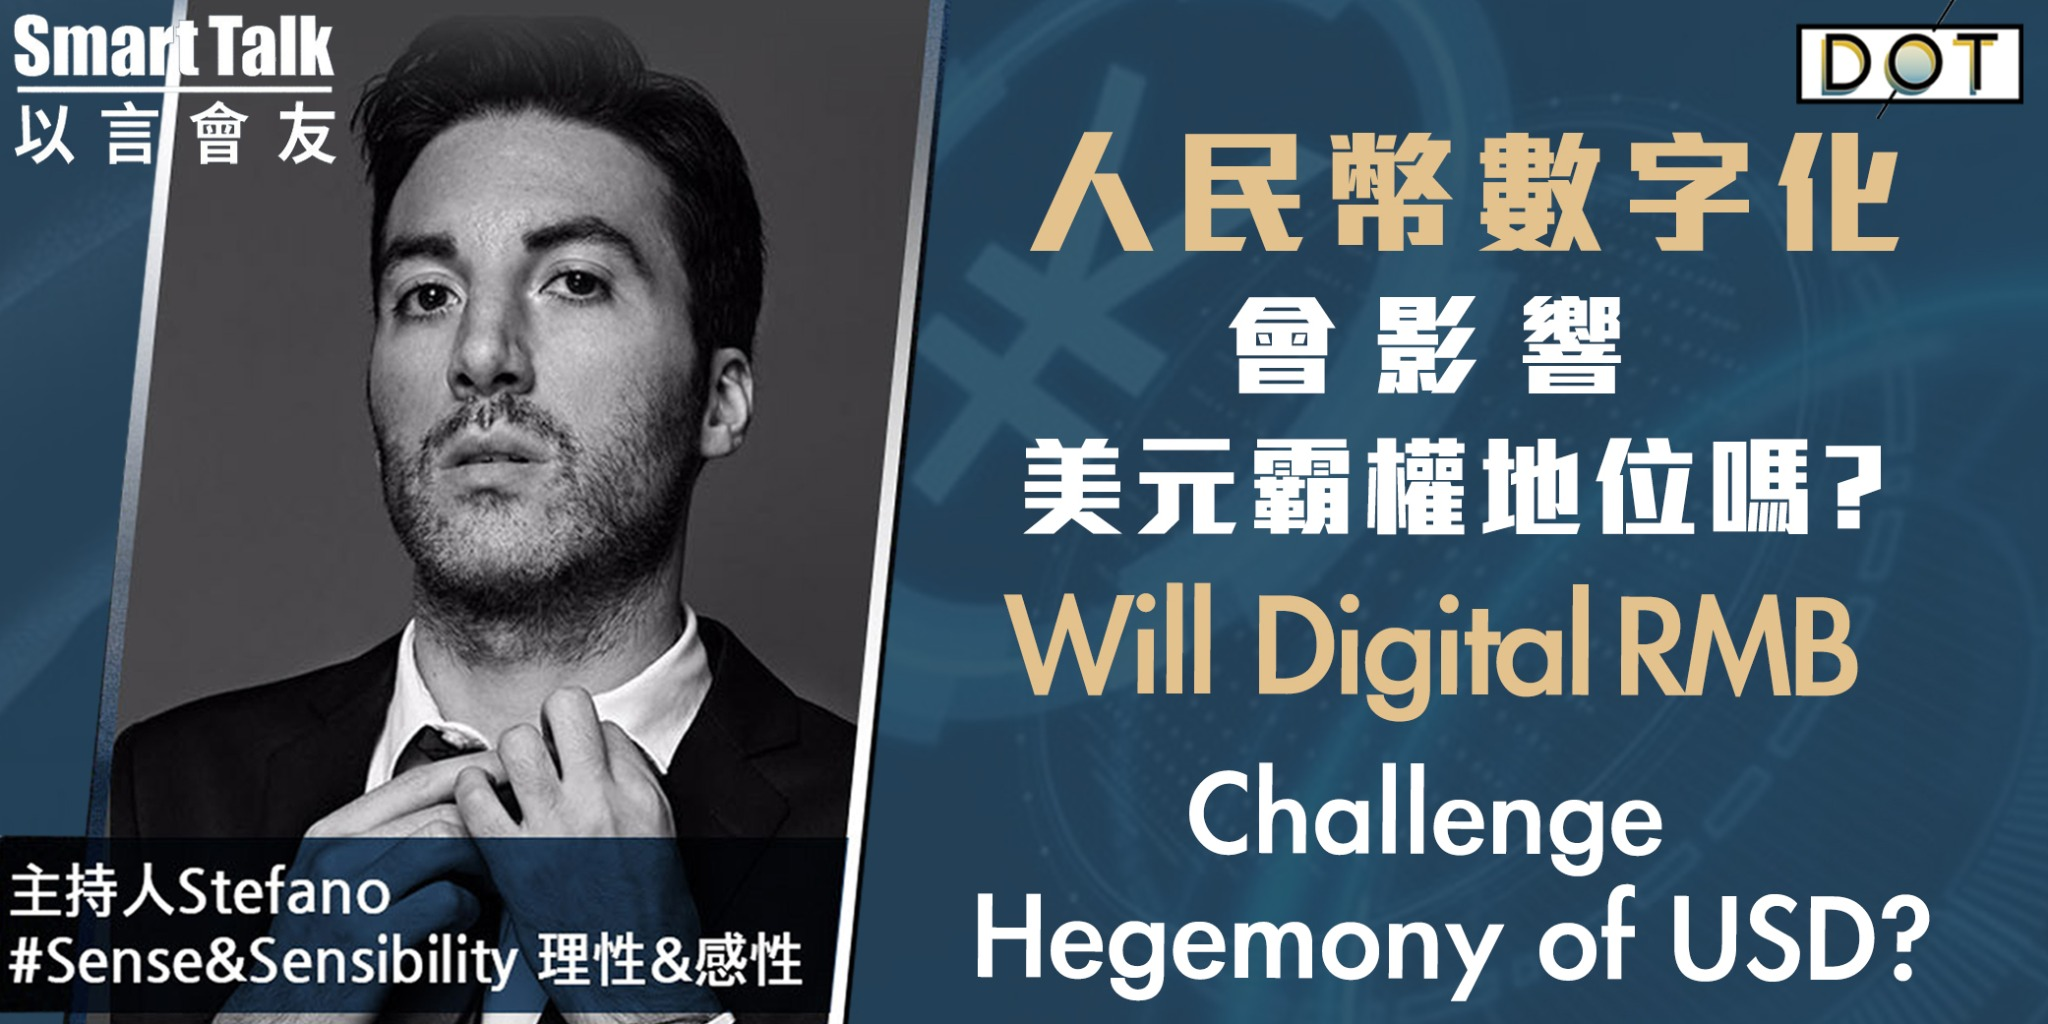 Smart Talk | Will digital RMB challenge hegemony of USD?